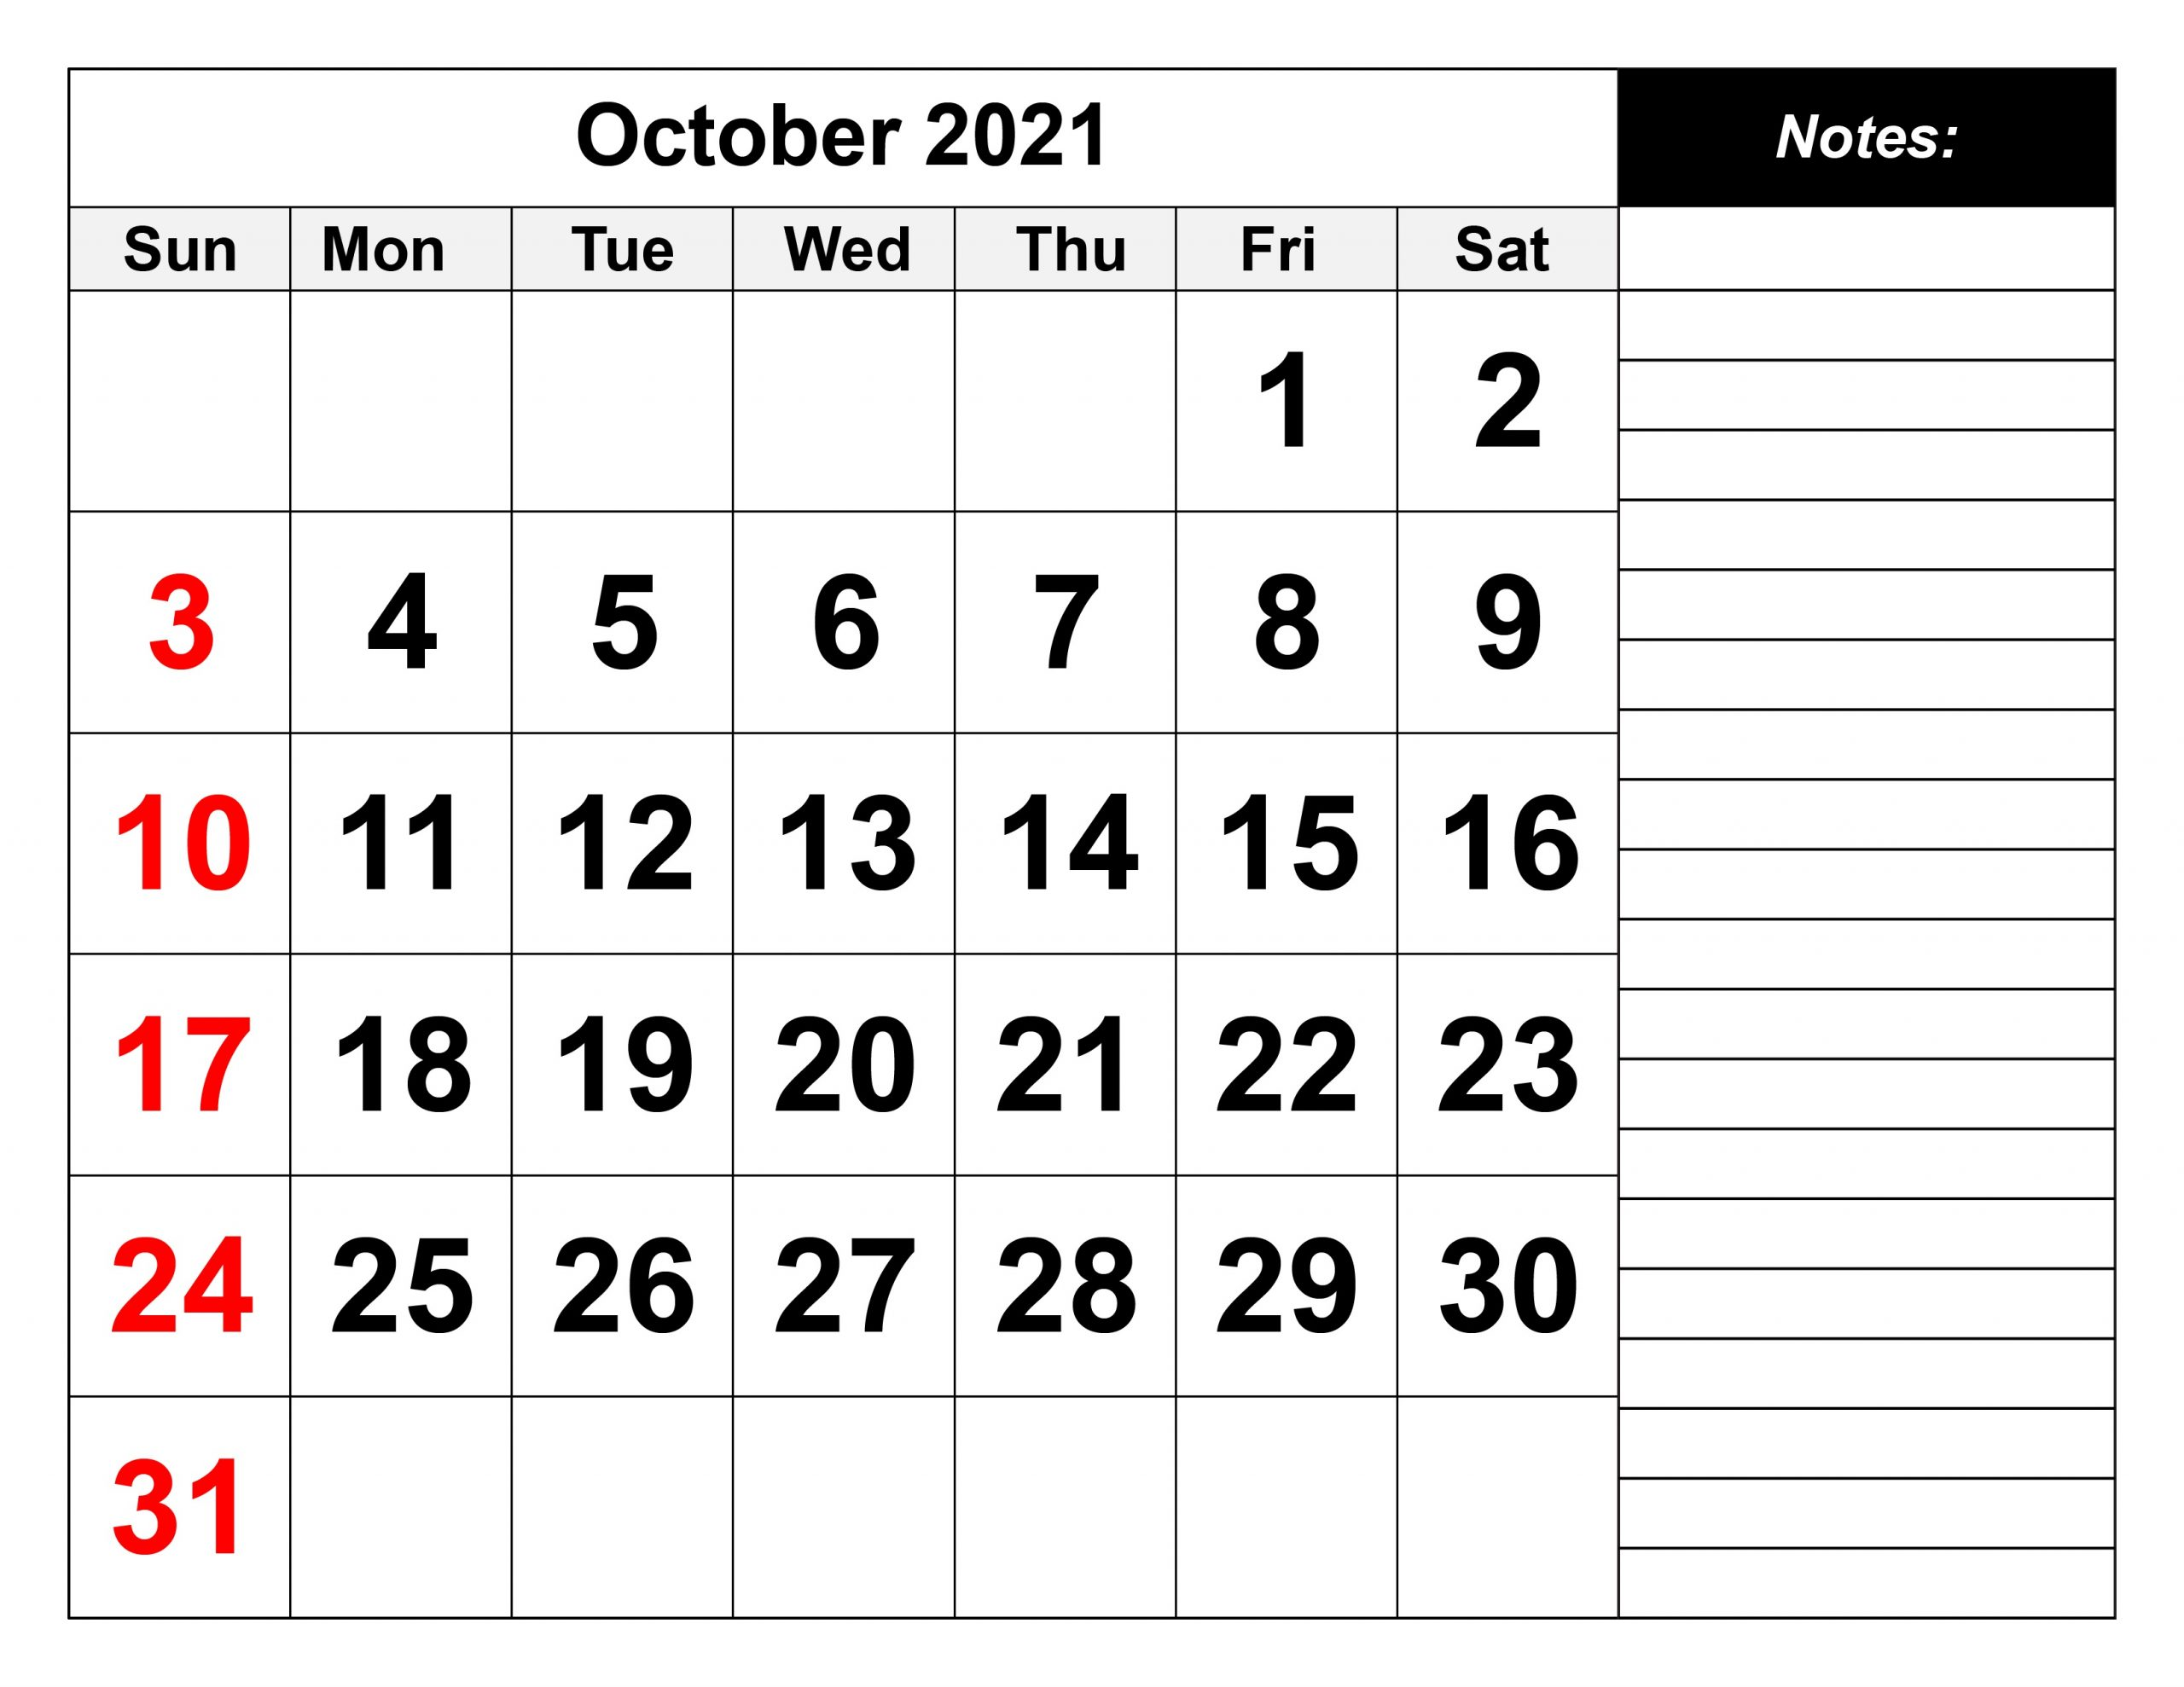 October 2021 Calendar Blank With Notes